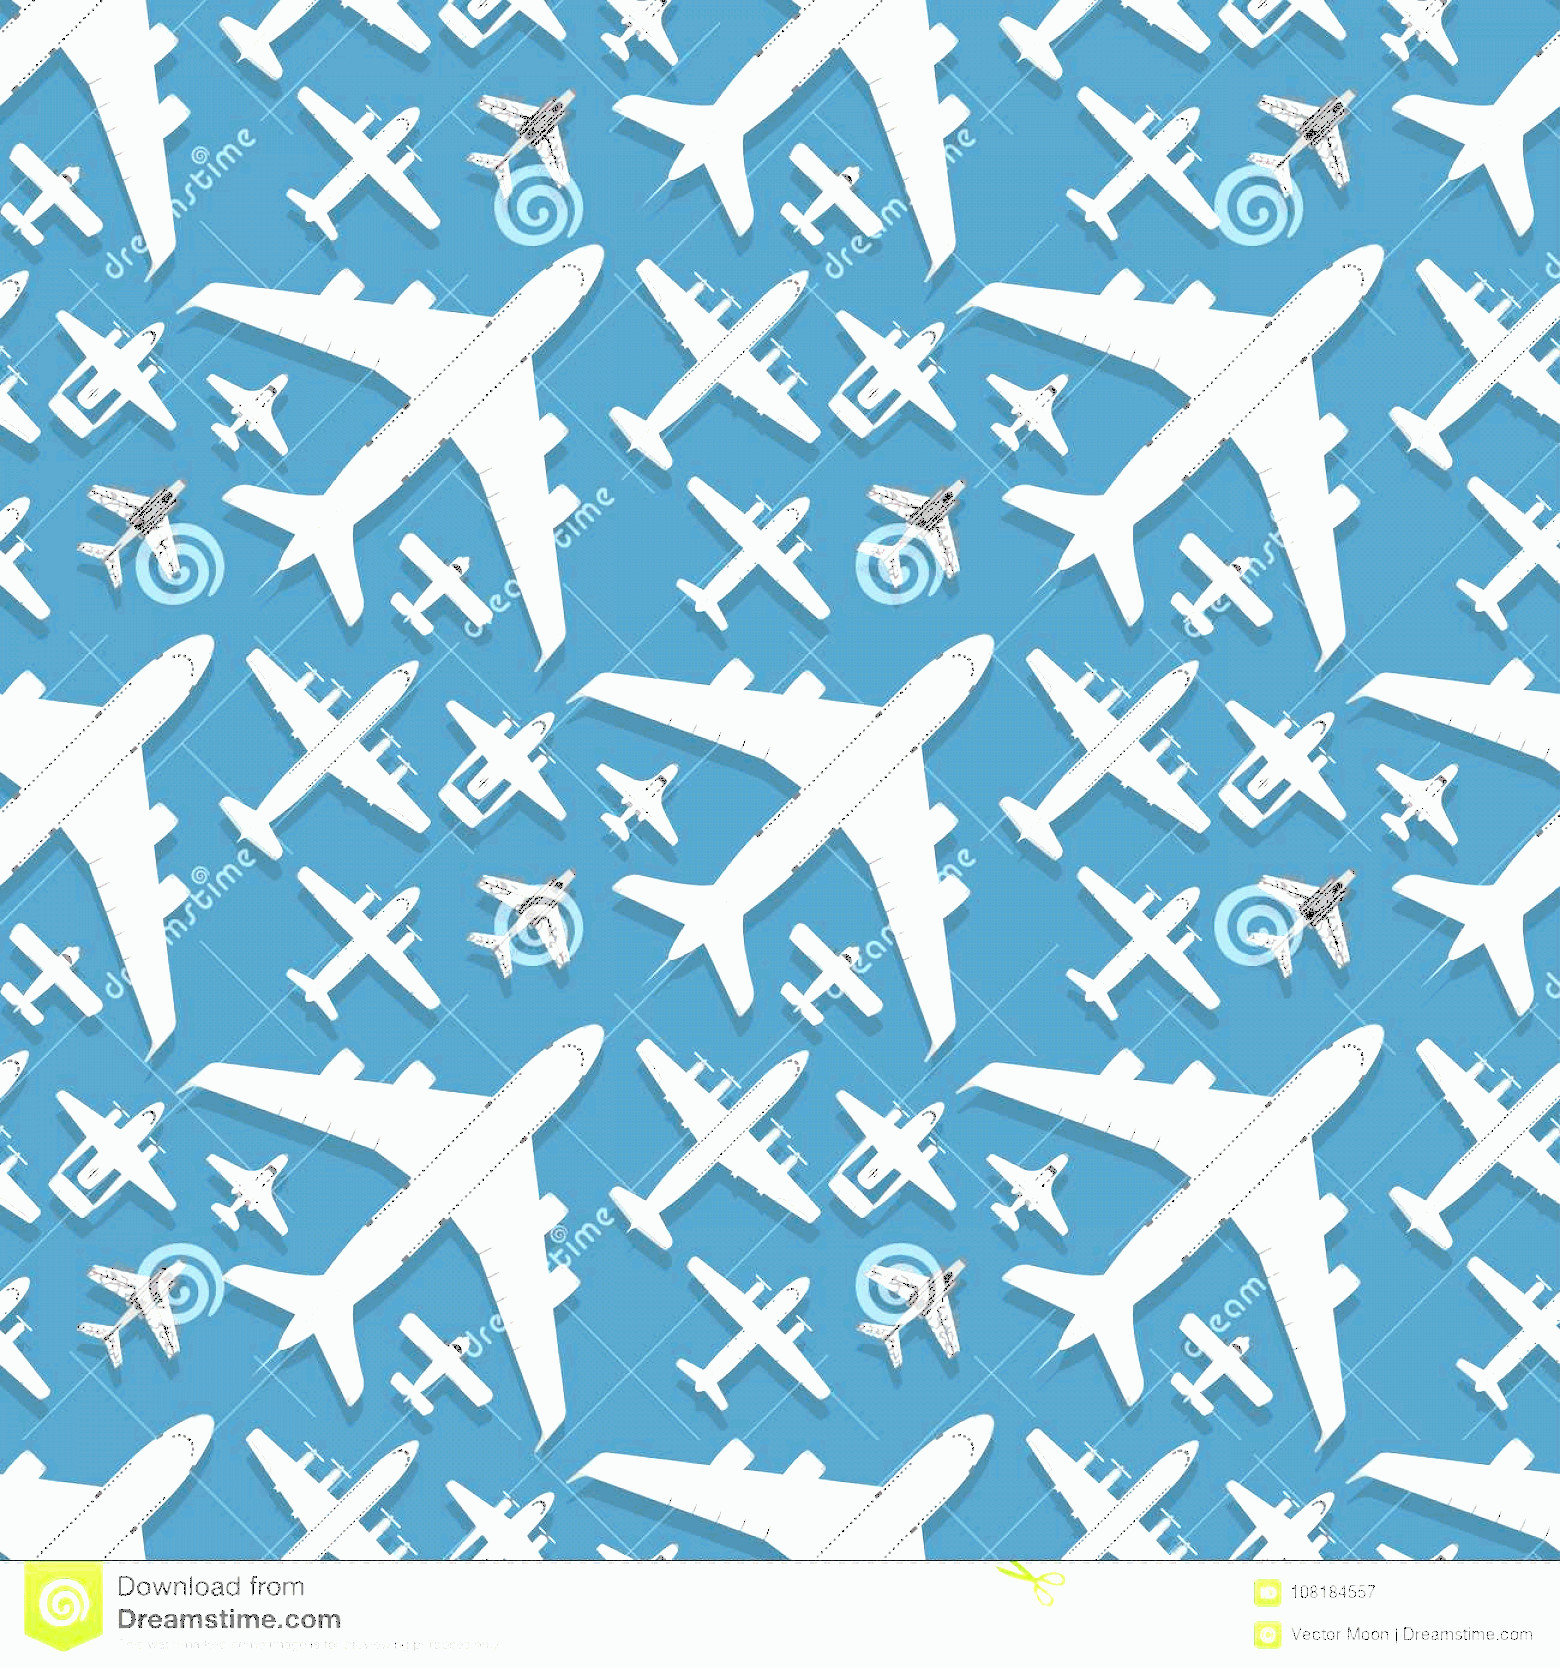 Aviation Vector Designs: Airplane Seamless Pattern Background Vector Illustration Top View Plane Aircraft Transportation Travel Way Design Passenger Image